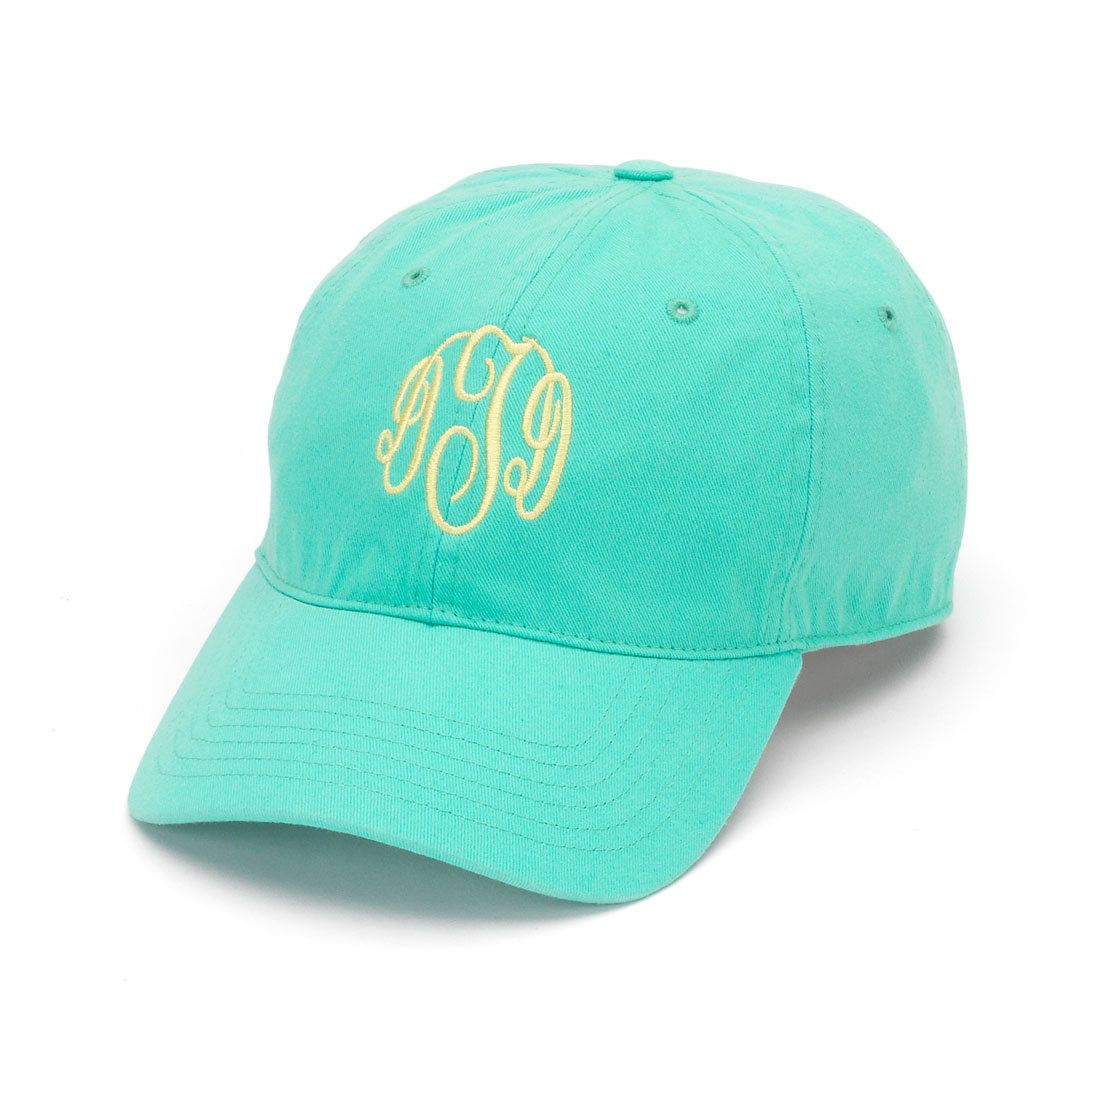 Mint Monogrammed Hat Monogram Cap with Cool Mesh Lining and Adjustable Leather Strap Bridal party or bridesmaid gift by LilyLouiseDesigns on Etsy